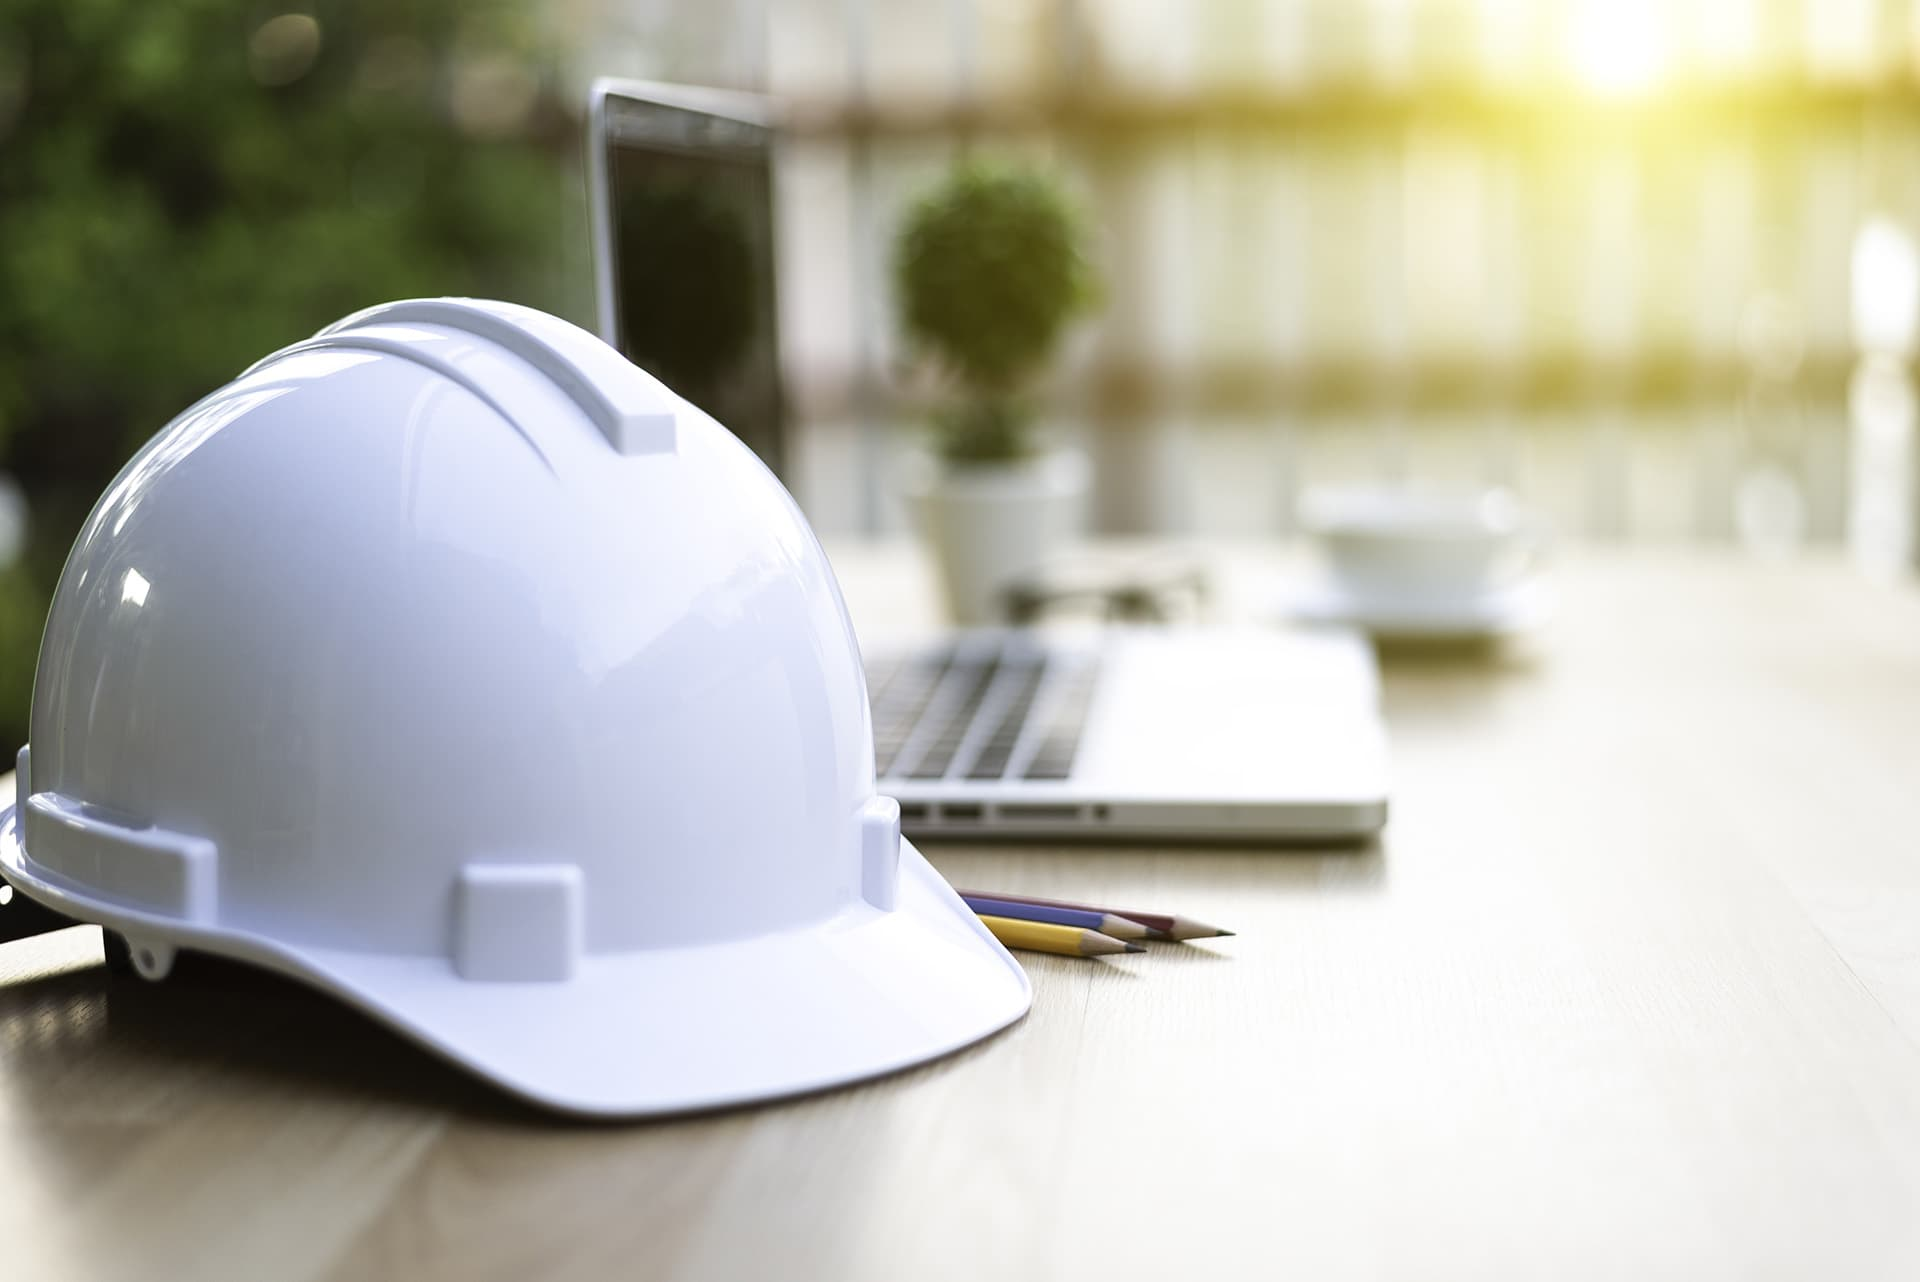 Hard hat on desk with laptop open with contractors insurance